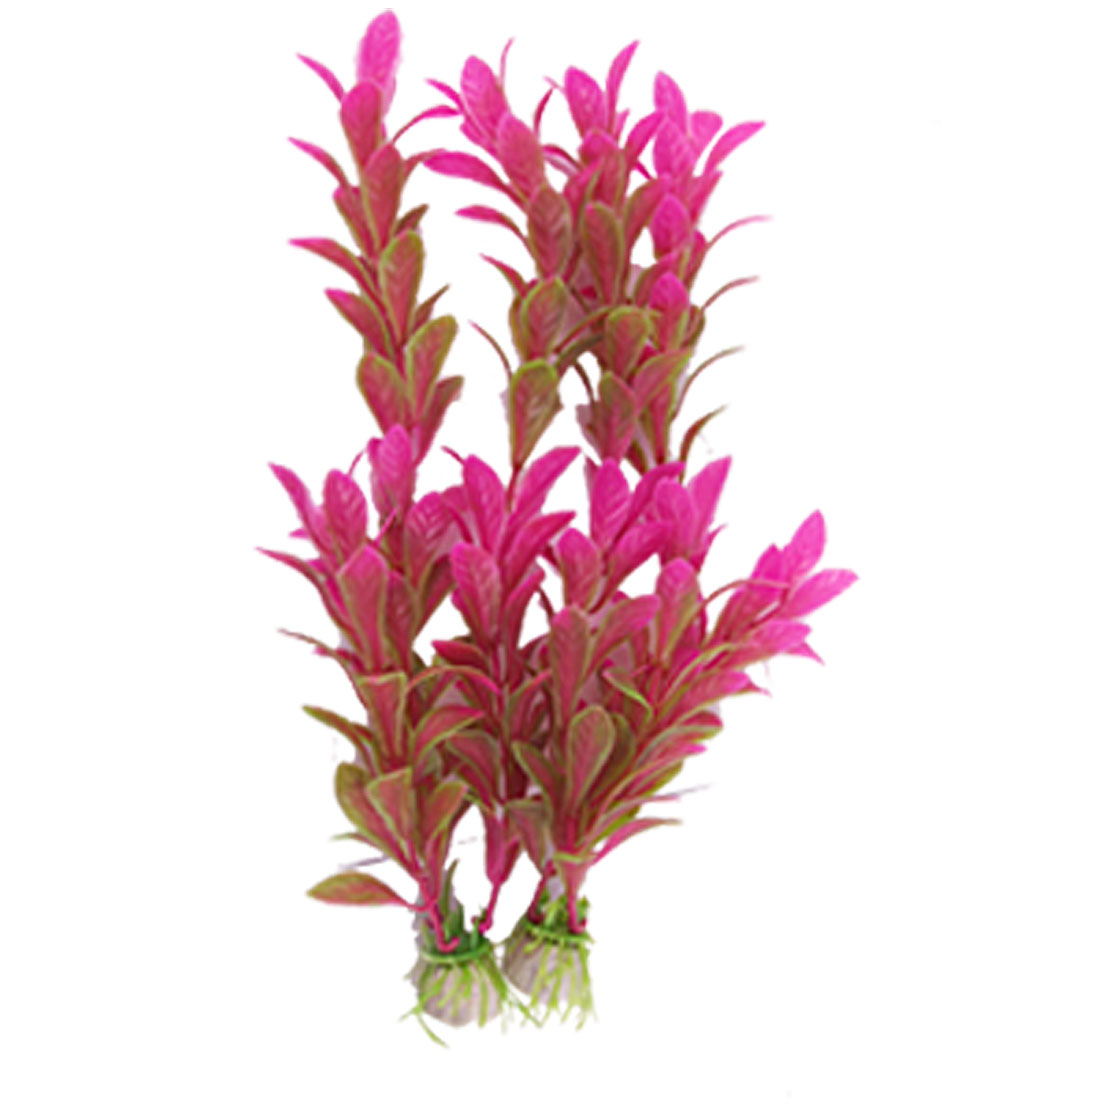 "Aquarium Ornament 9.4"" High Fuchsia Green Plastic Plant Grass 2 Pcs"